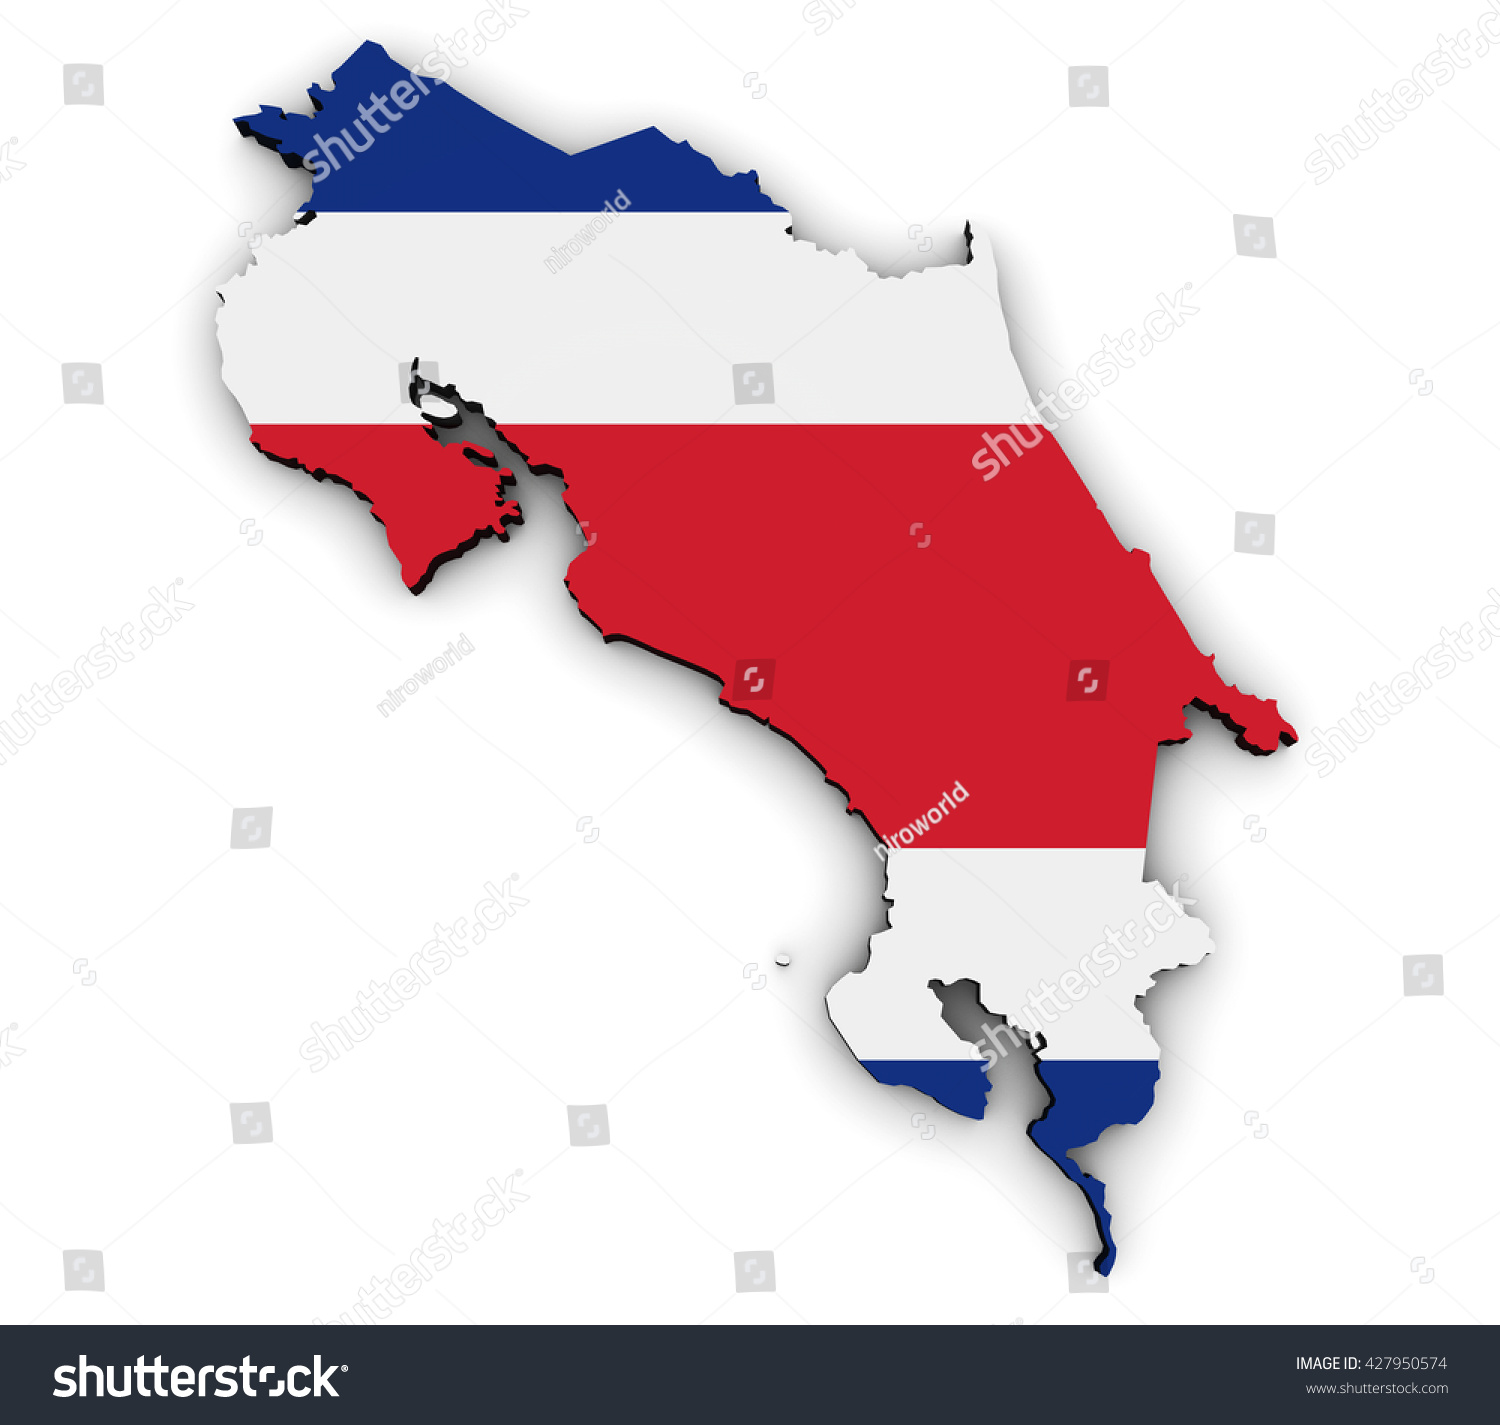 Costa rica shape map costa rican stock illustration 427950574 costa rica shape and map with costa rican flag symbol 3d illustration isolated on white background biocorpaavc Gallery